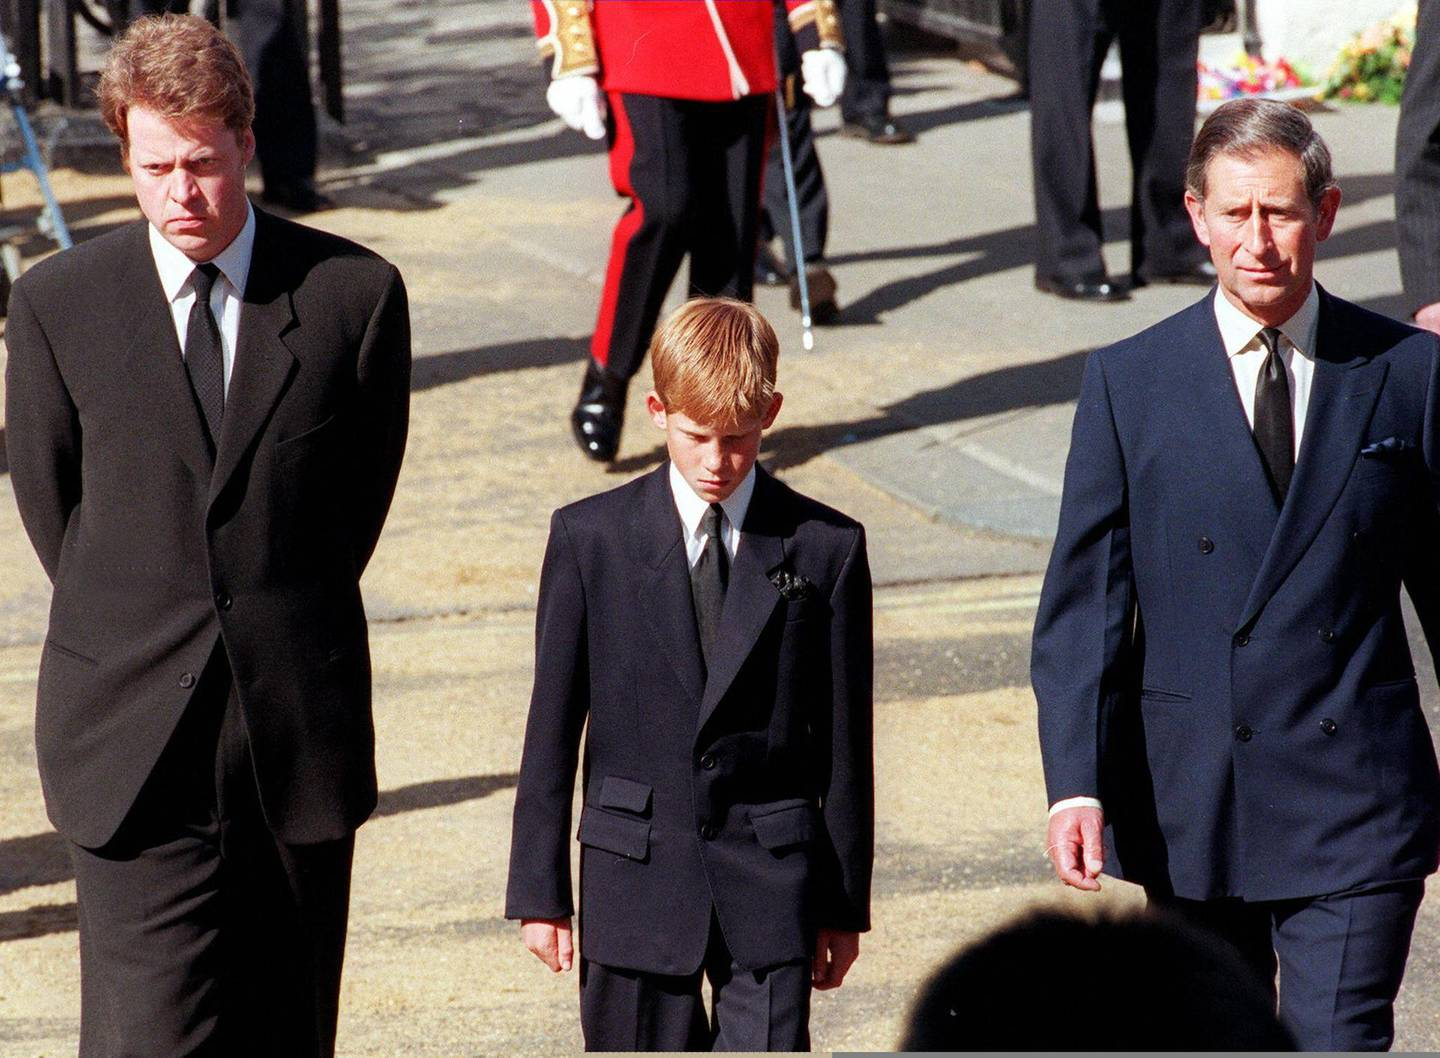 (FILES) In this file photo taken on September 06, 1997 (L to R) Earl Spencer, Diana's brother, Prince Harry, her son, and Prince Charles, her former husband, join the gun carriage carrying the coffin of Princess of Wales at Marlboro Road in London during the funeral. Scarred by the death of his mother, Prince Harry has struggled in the royal limelight for much of his life, and his fears for wife Meghan have now put him at loggerheads with his family. / AFP / Gerry PENNY